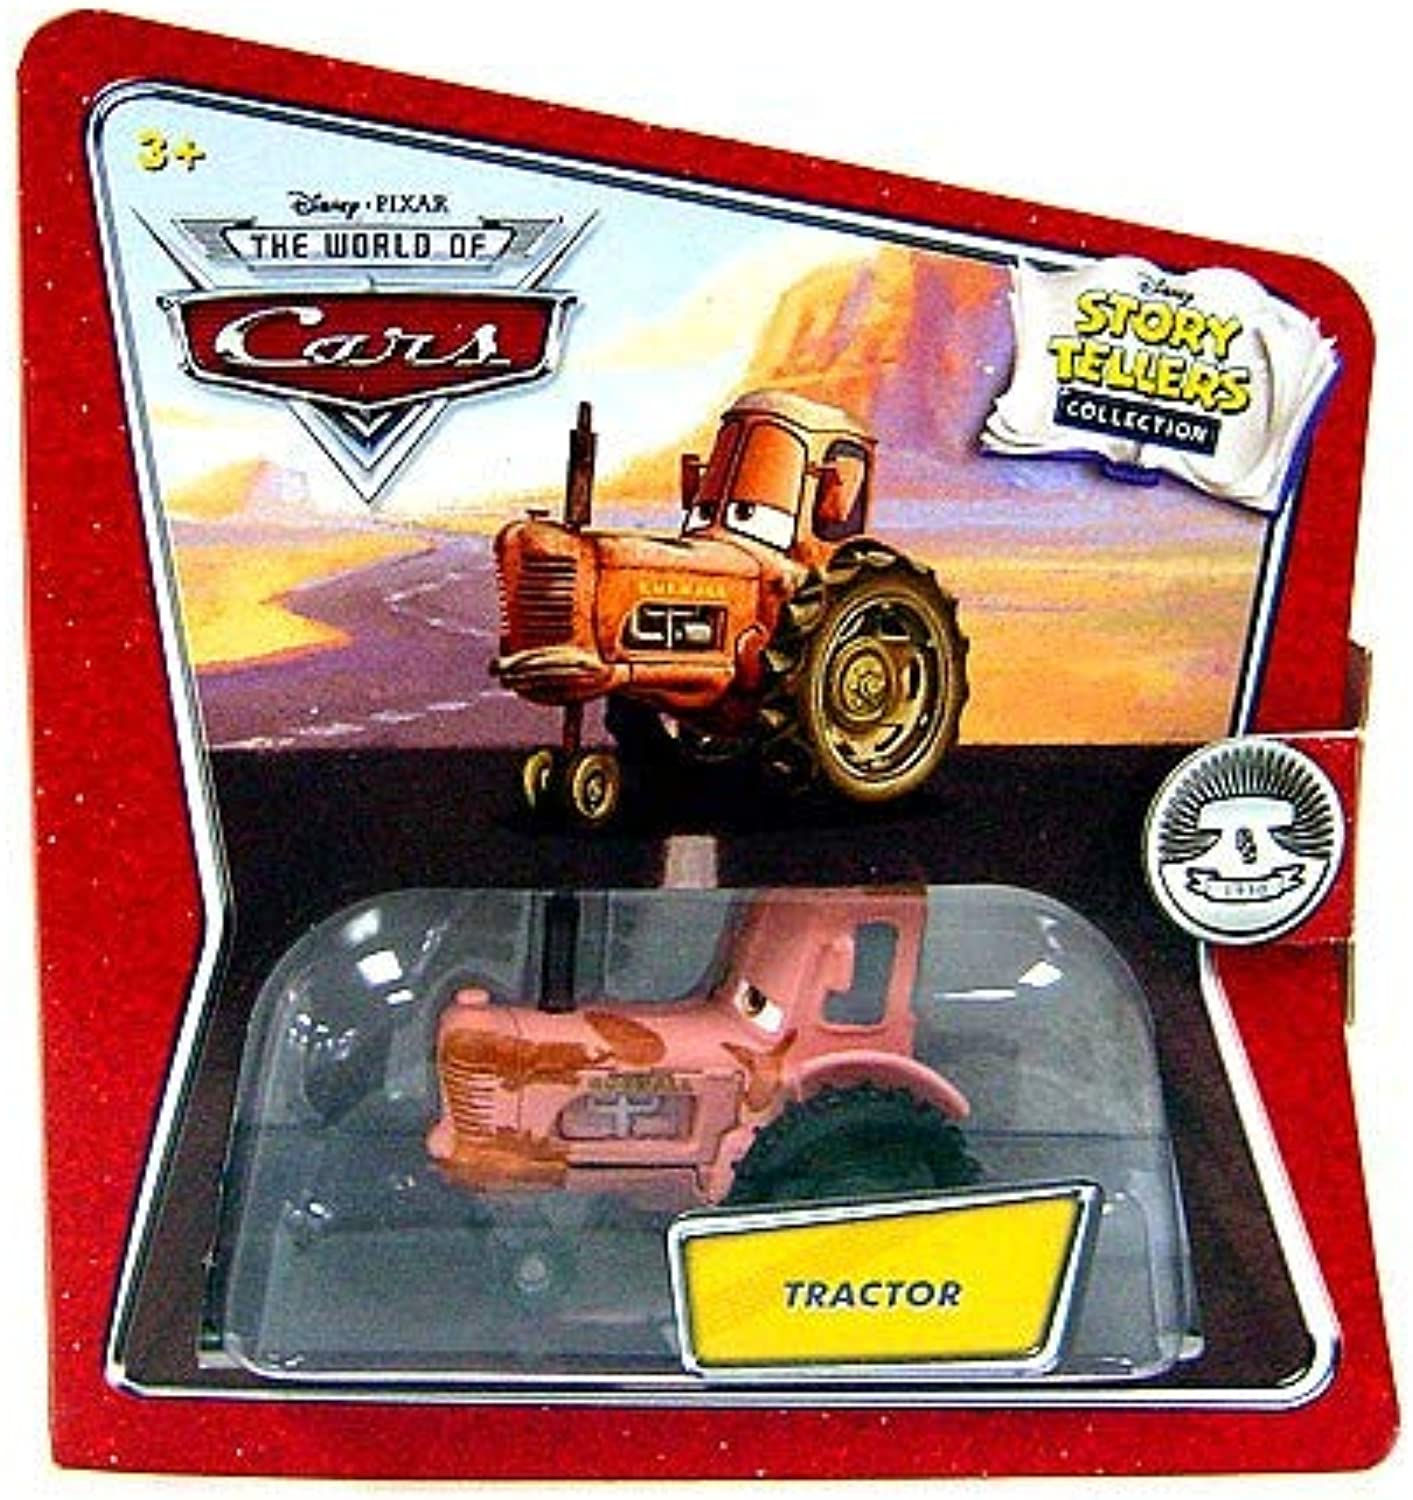 Disney   Pixar CARS Movie 155 Die Cast Story Tellers Collection Tractor